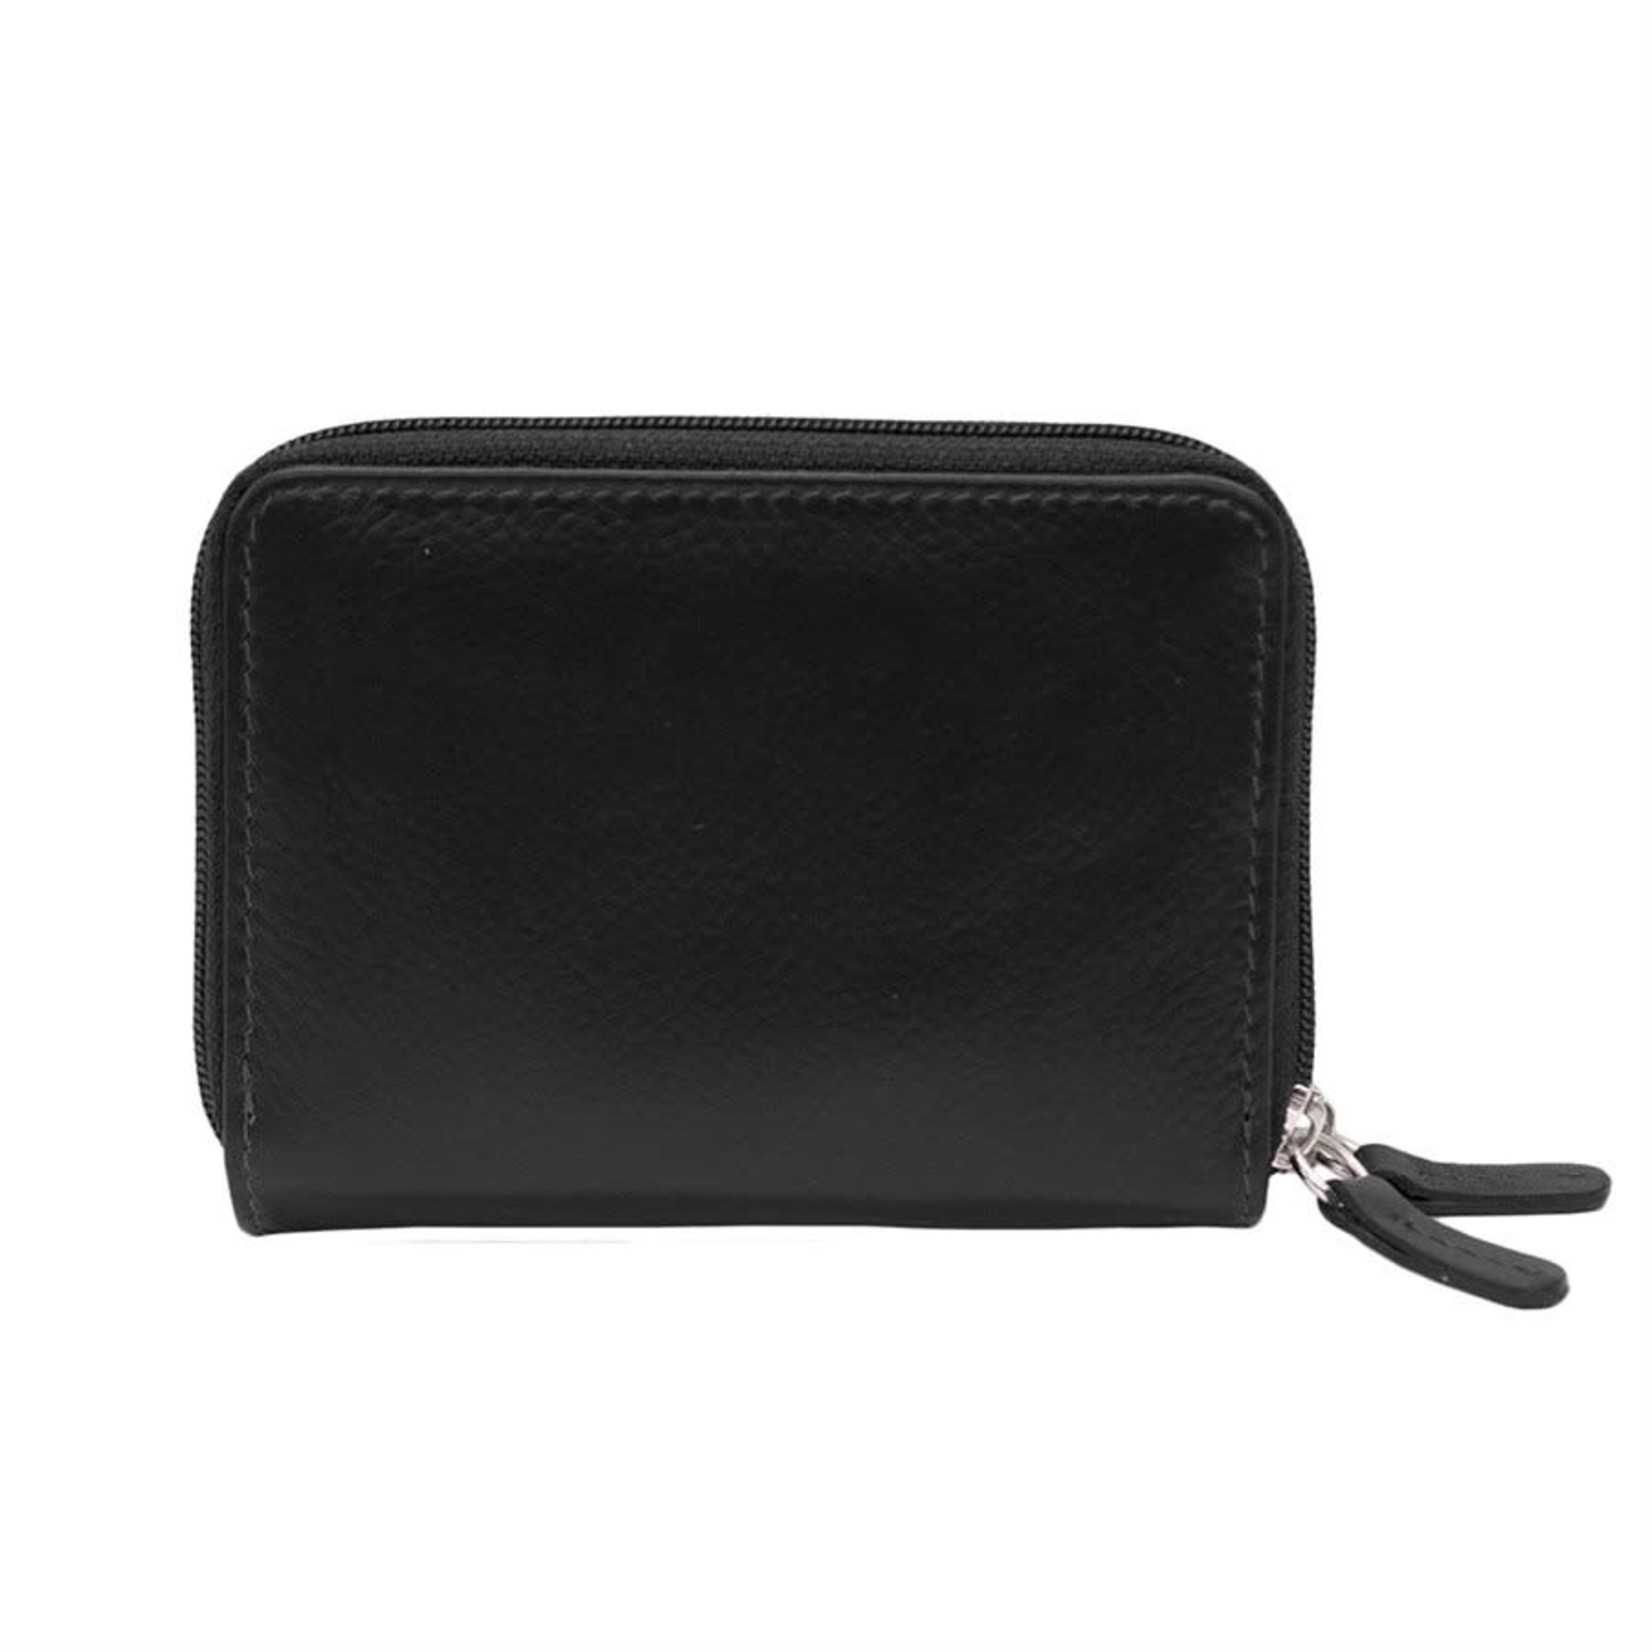 Leather Handbags and Accessories 6714 Black - RFID Double Zip Accordion Card Holder